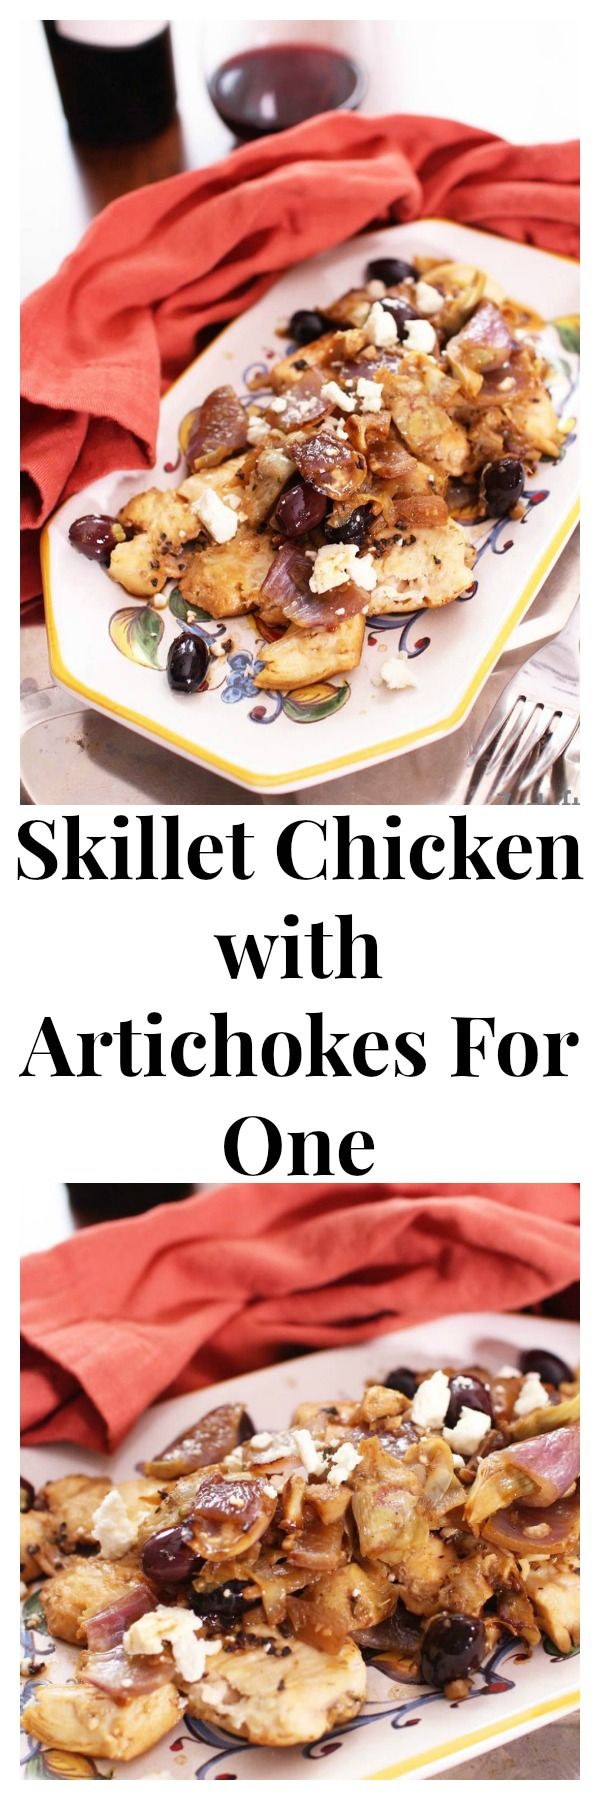 The flavors in this Skillet Chicken with Artichokes are amazing! Kalamata olives, red onions, artichokes and feta come together beautifully and compliment each other so well into this easy to make single serving dish. | ZagLeft